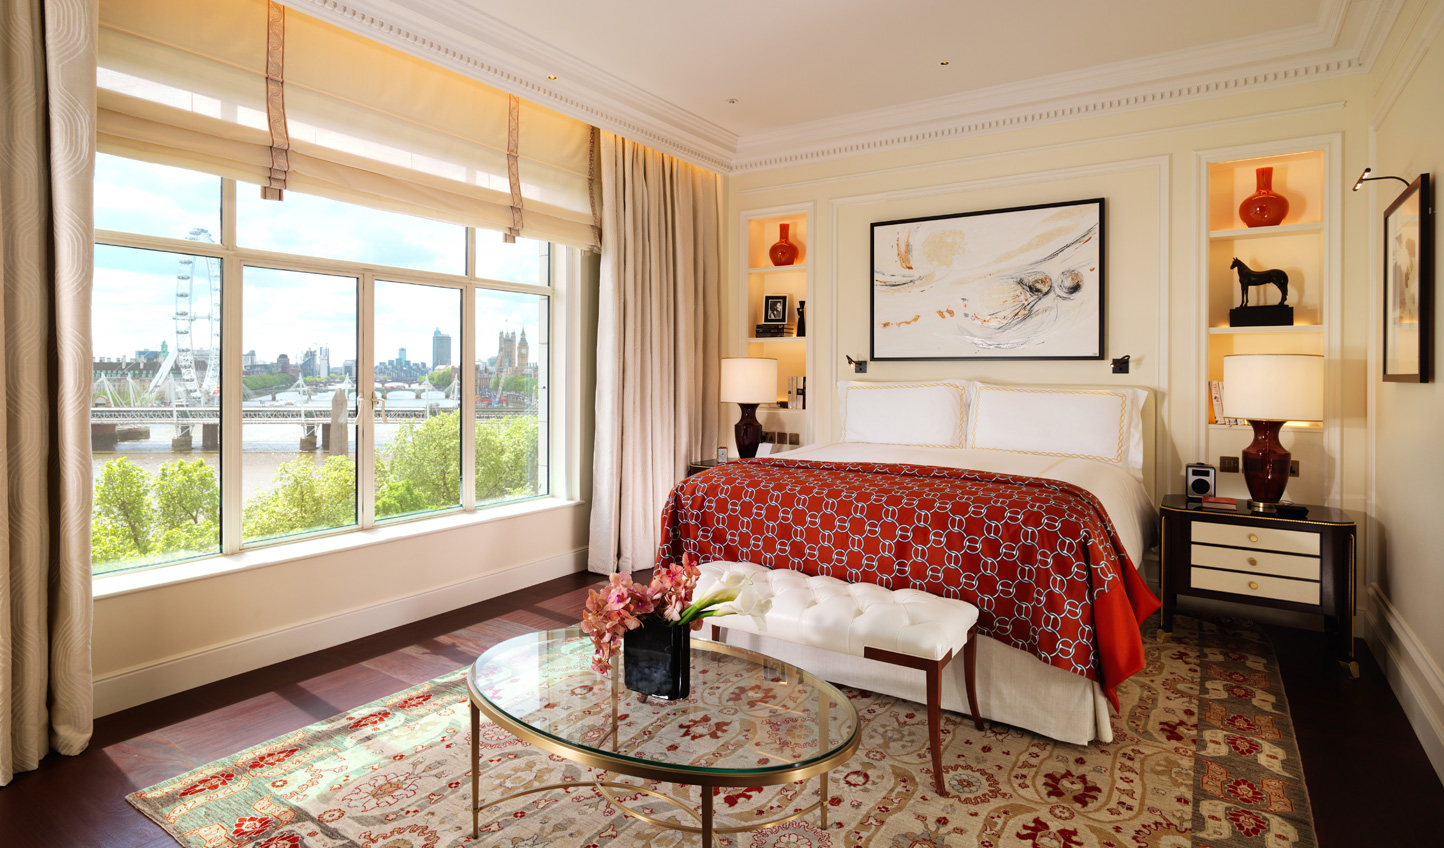 Relax in the luxury of the Savoy Suite and enjoy views across the Thames